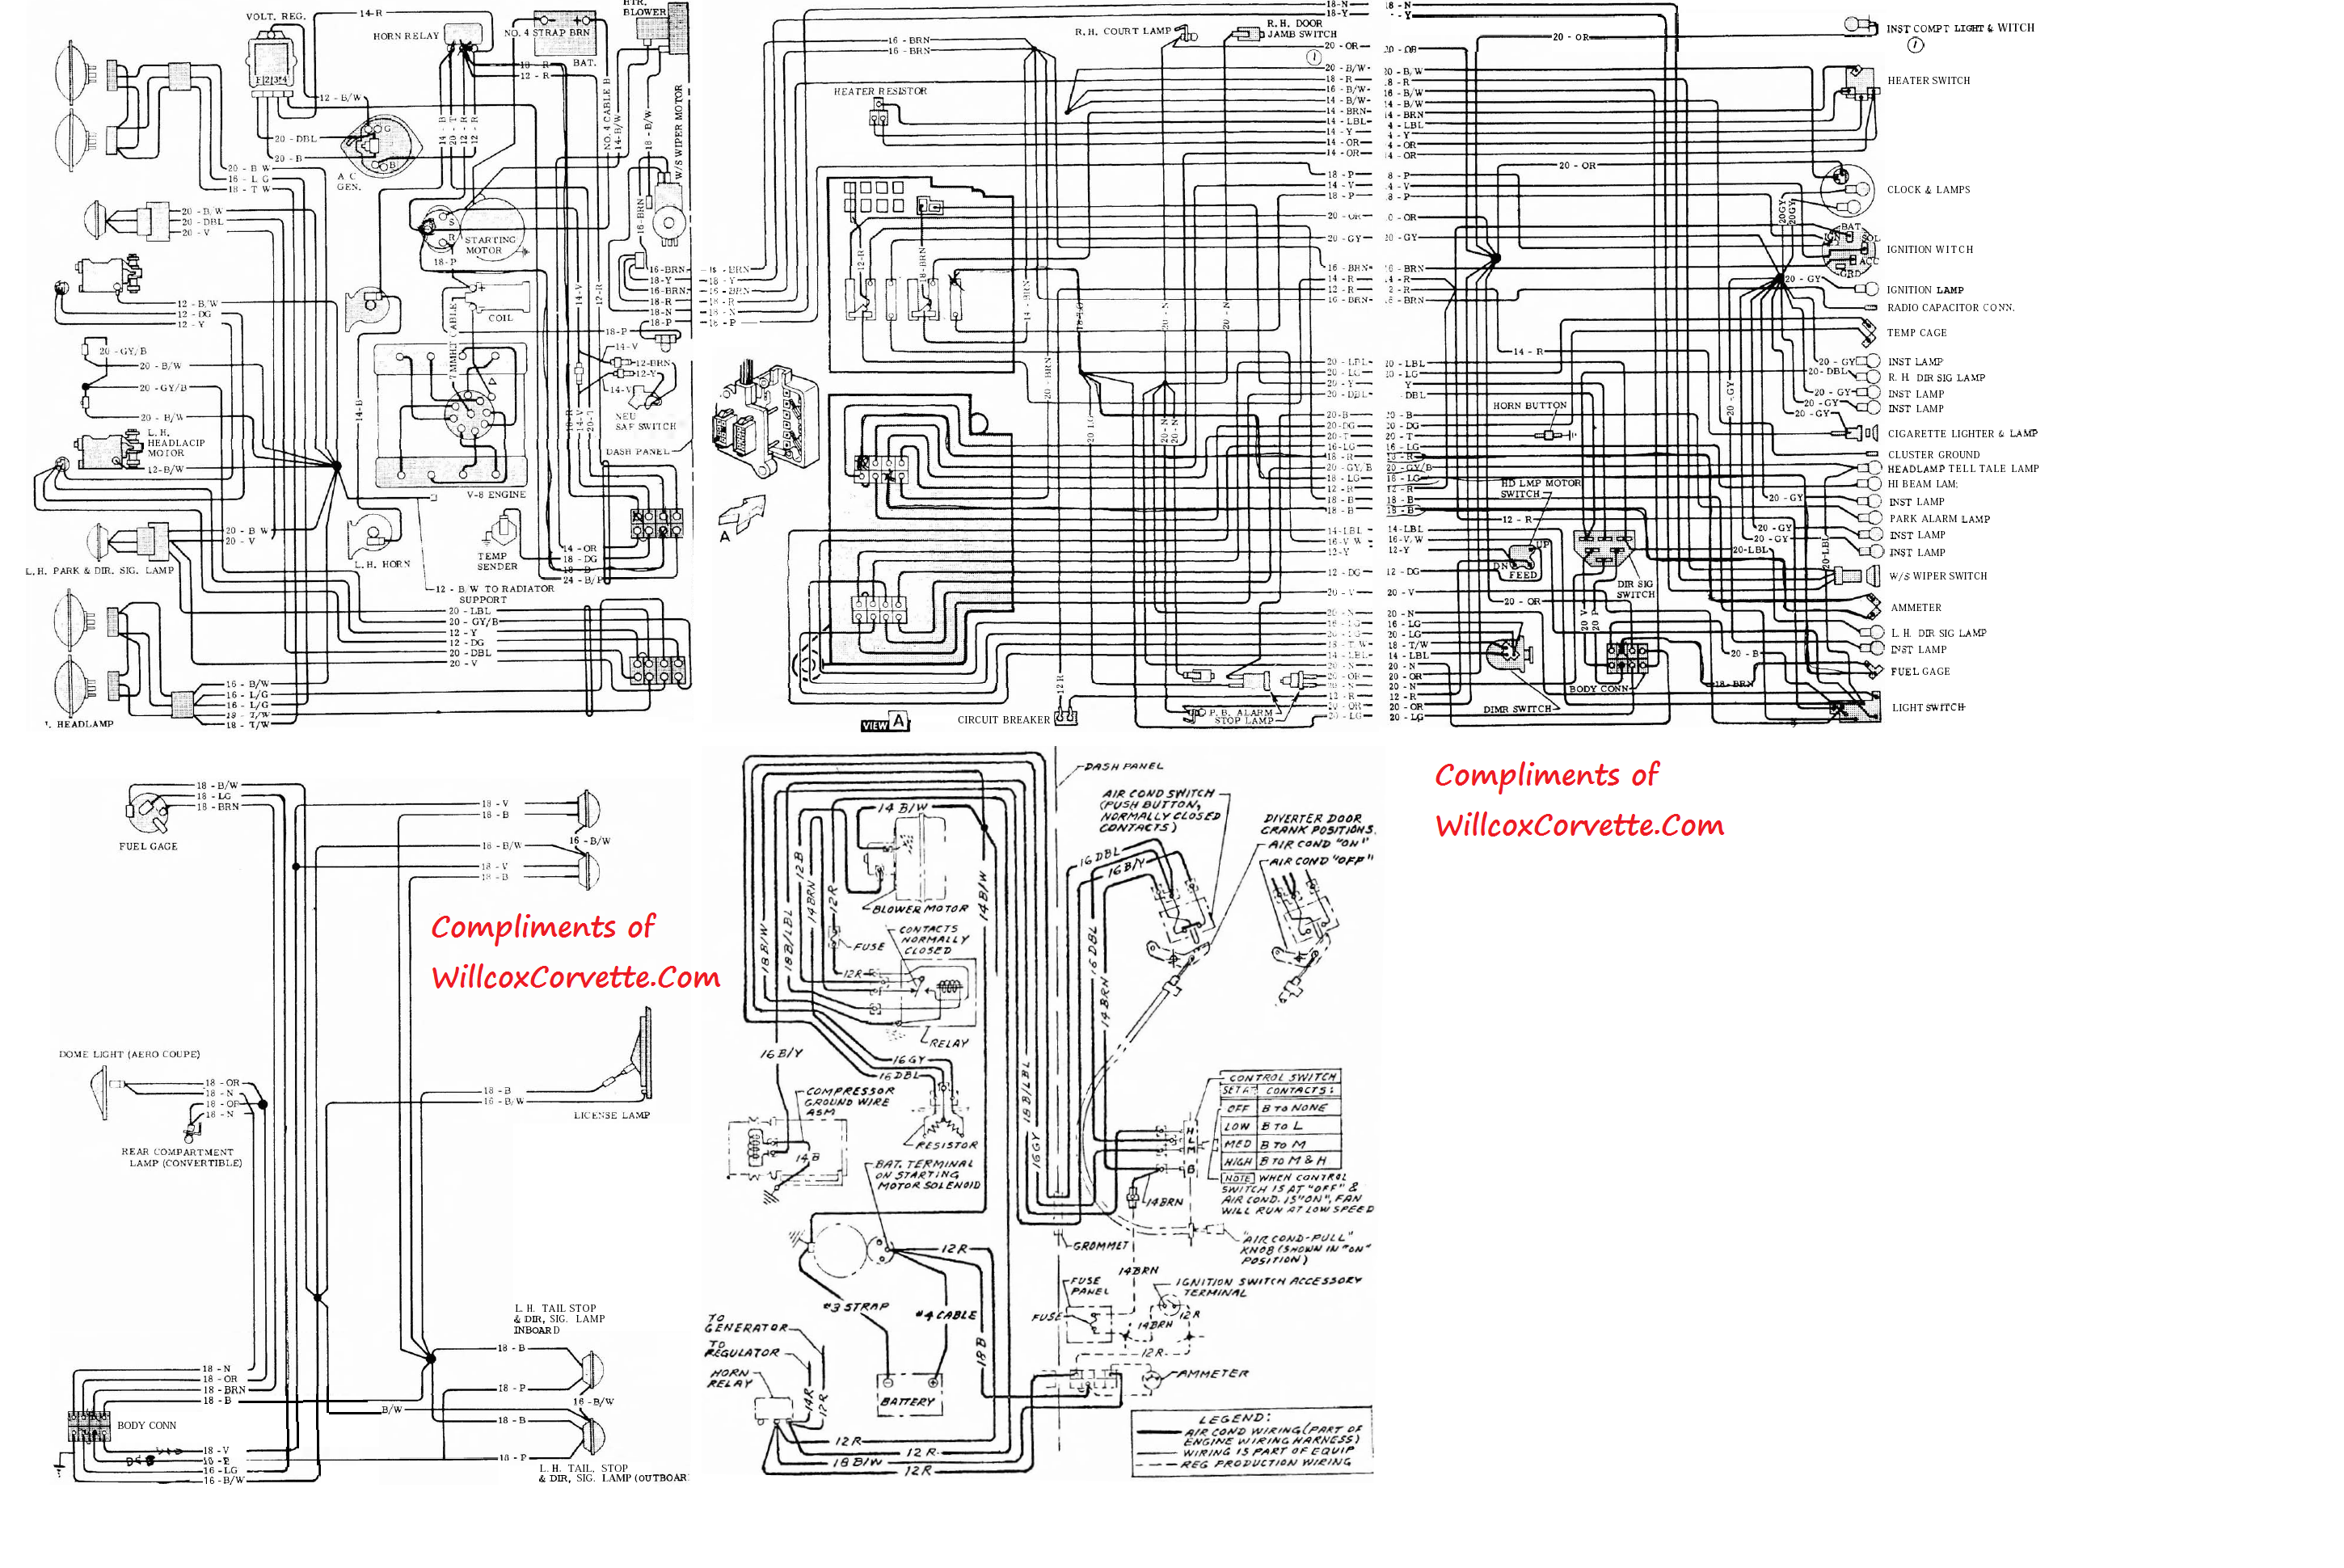 1986 Corvette Ecm Wiring Diagram. Corvette. Auto Wiring